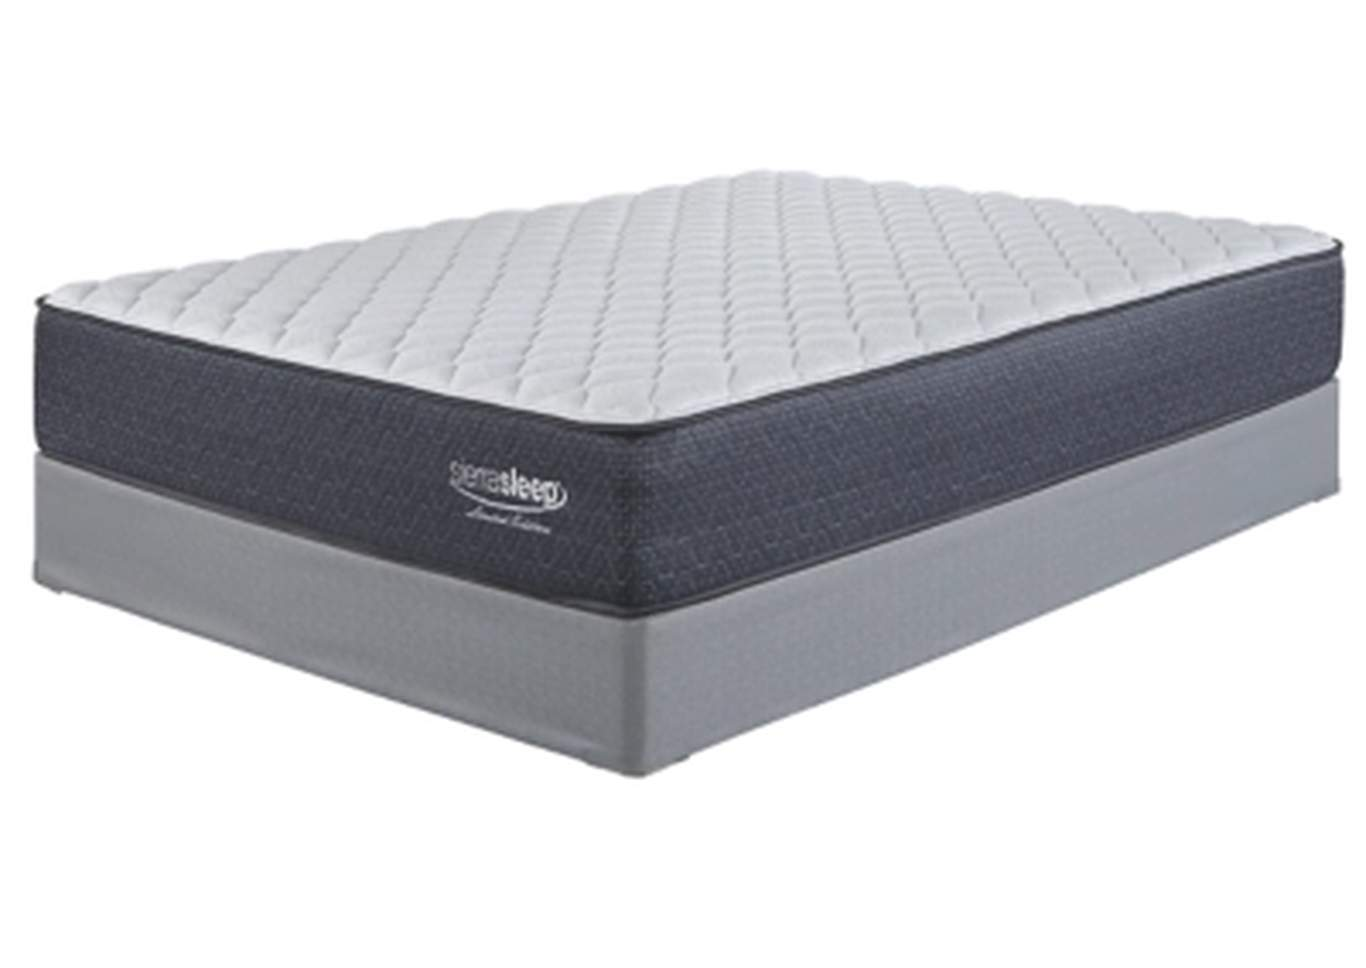 Limited Edition Firm White Full Mattress,Sierra Sleep by Ashley